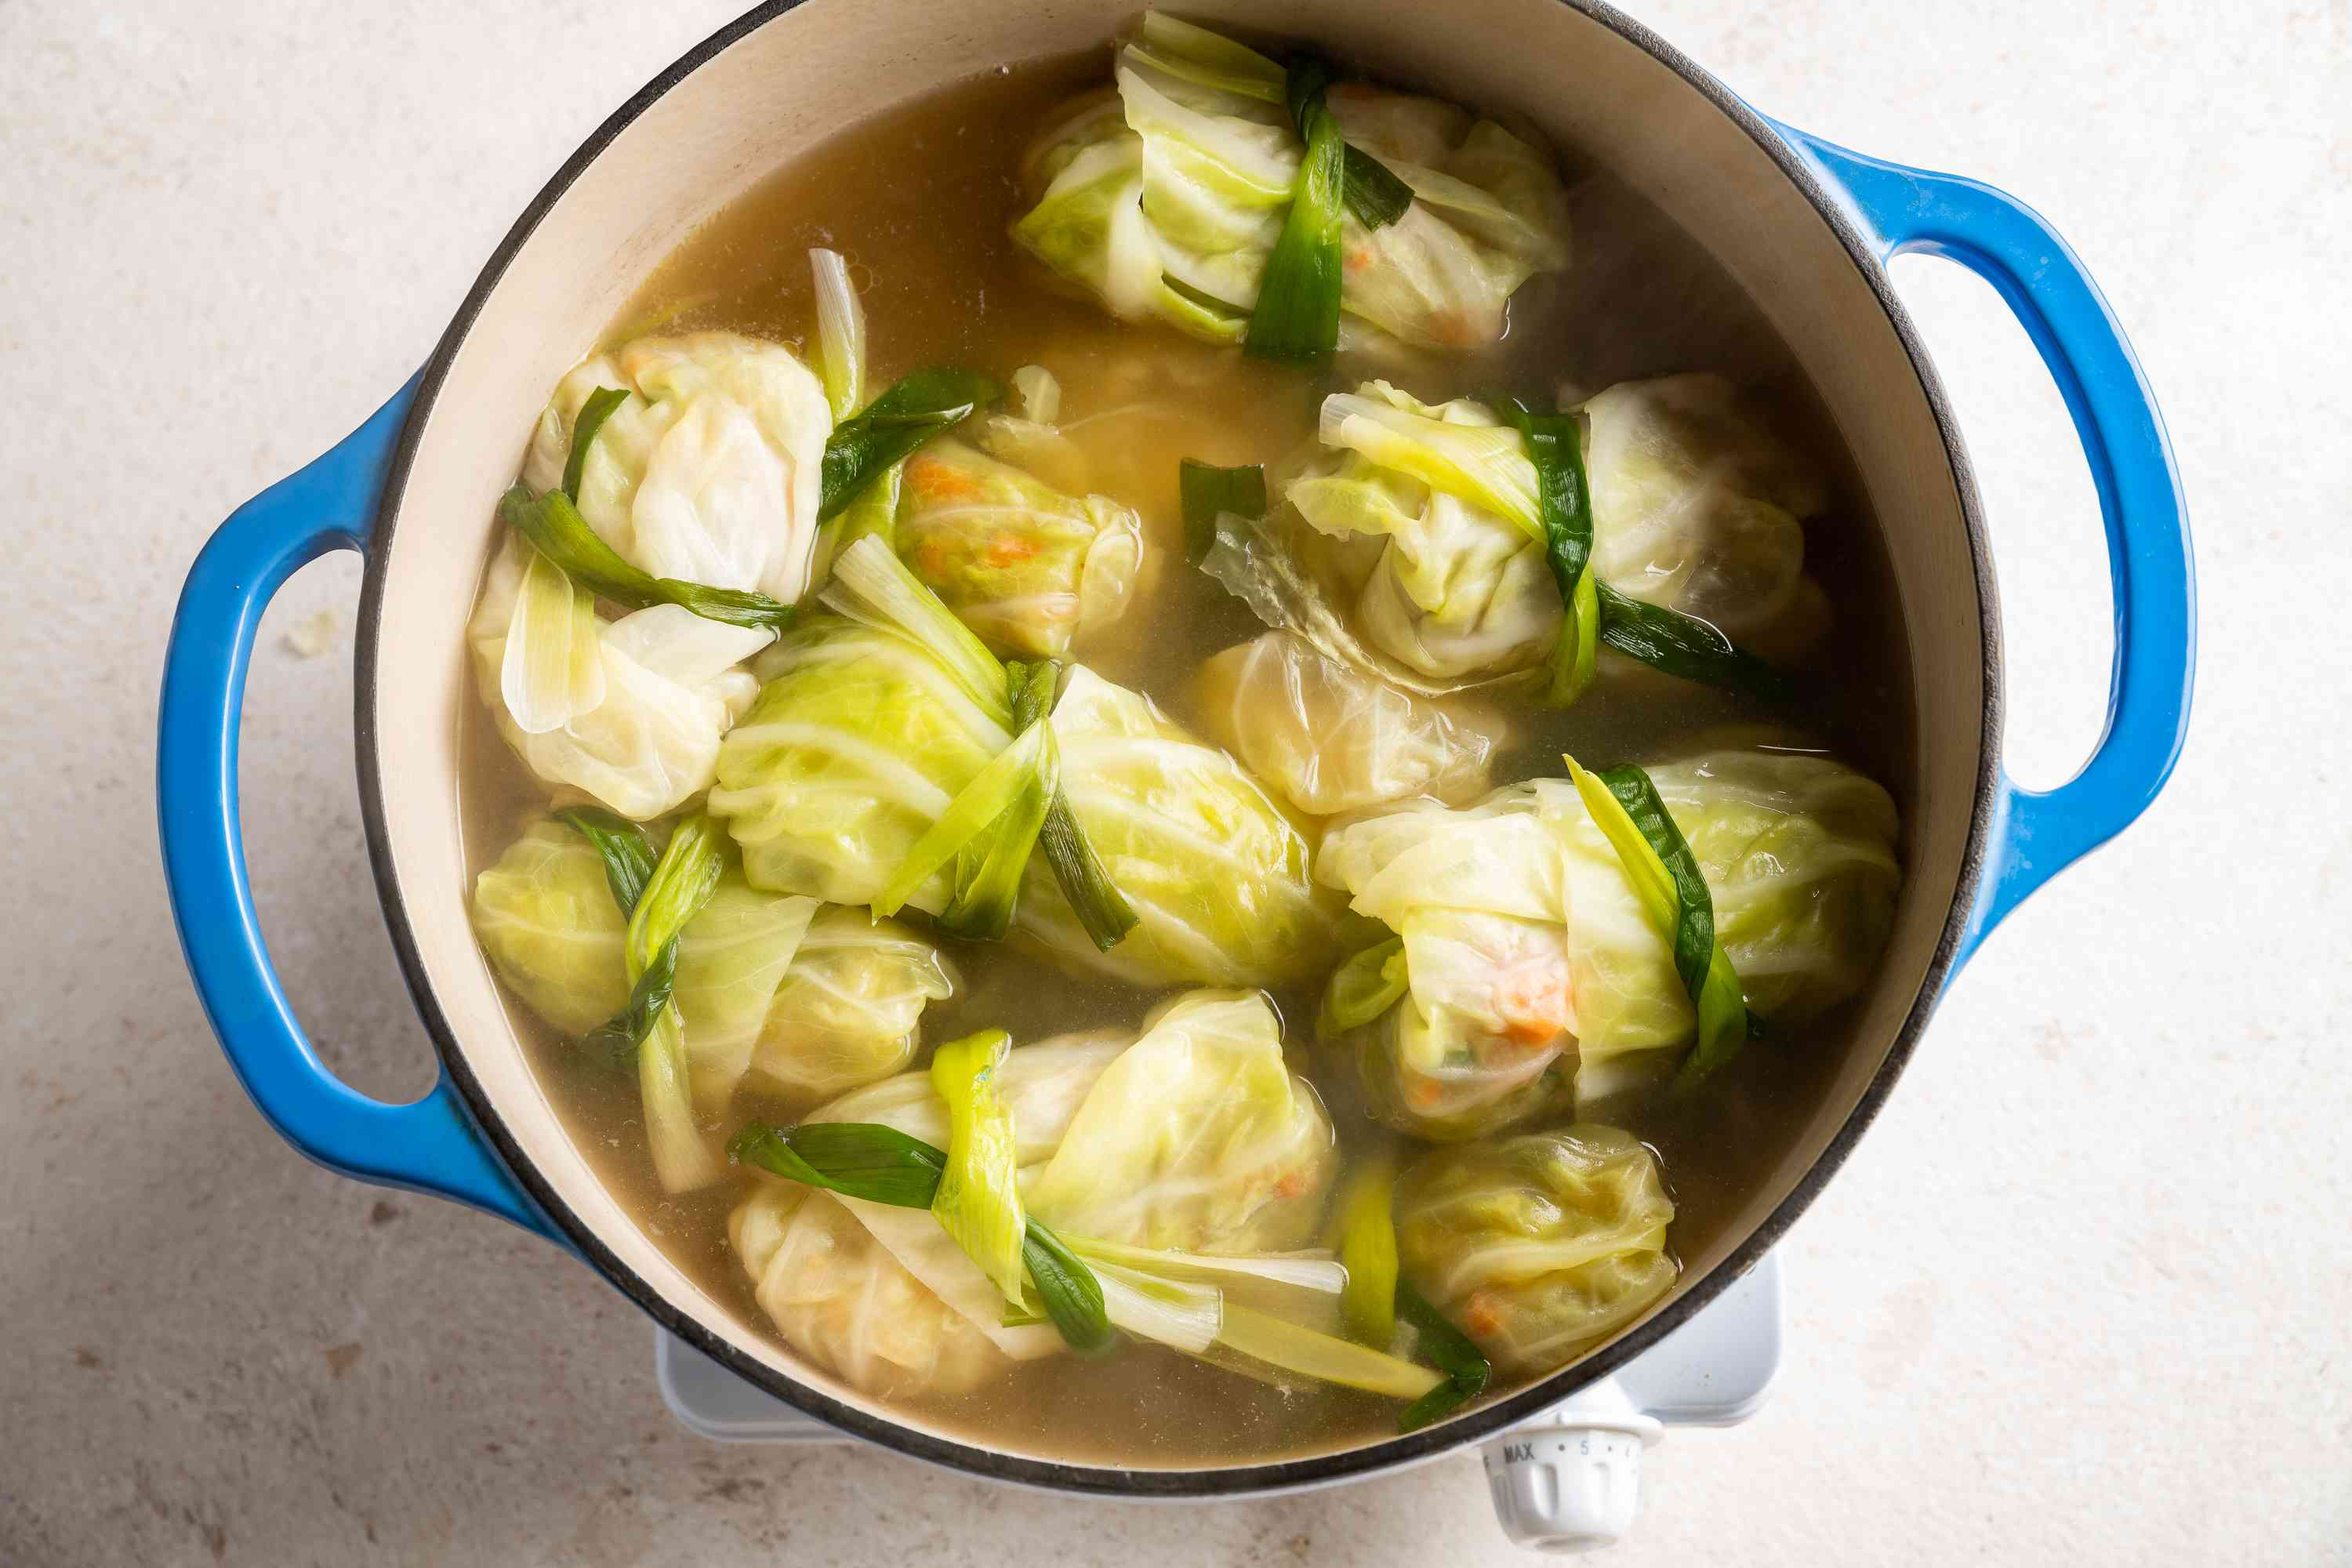 Canh Bap Cai Nhoi Thit (Vietnamese Cabbage Rolls Soup) in a pot with broth